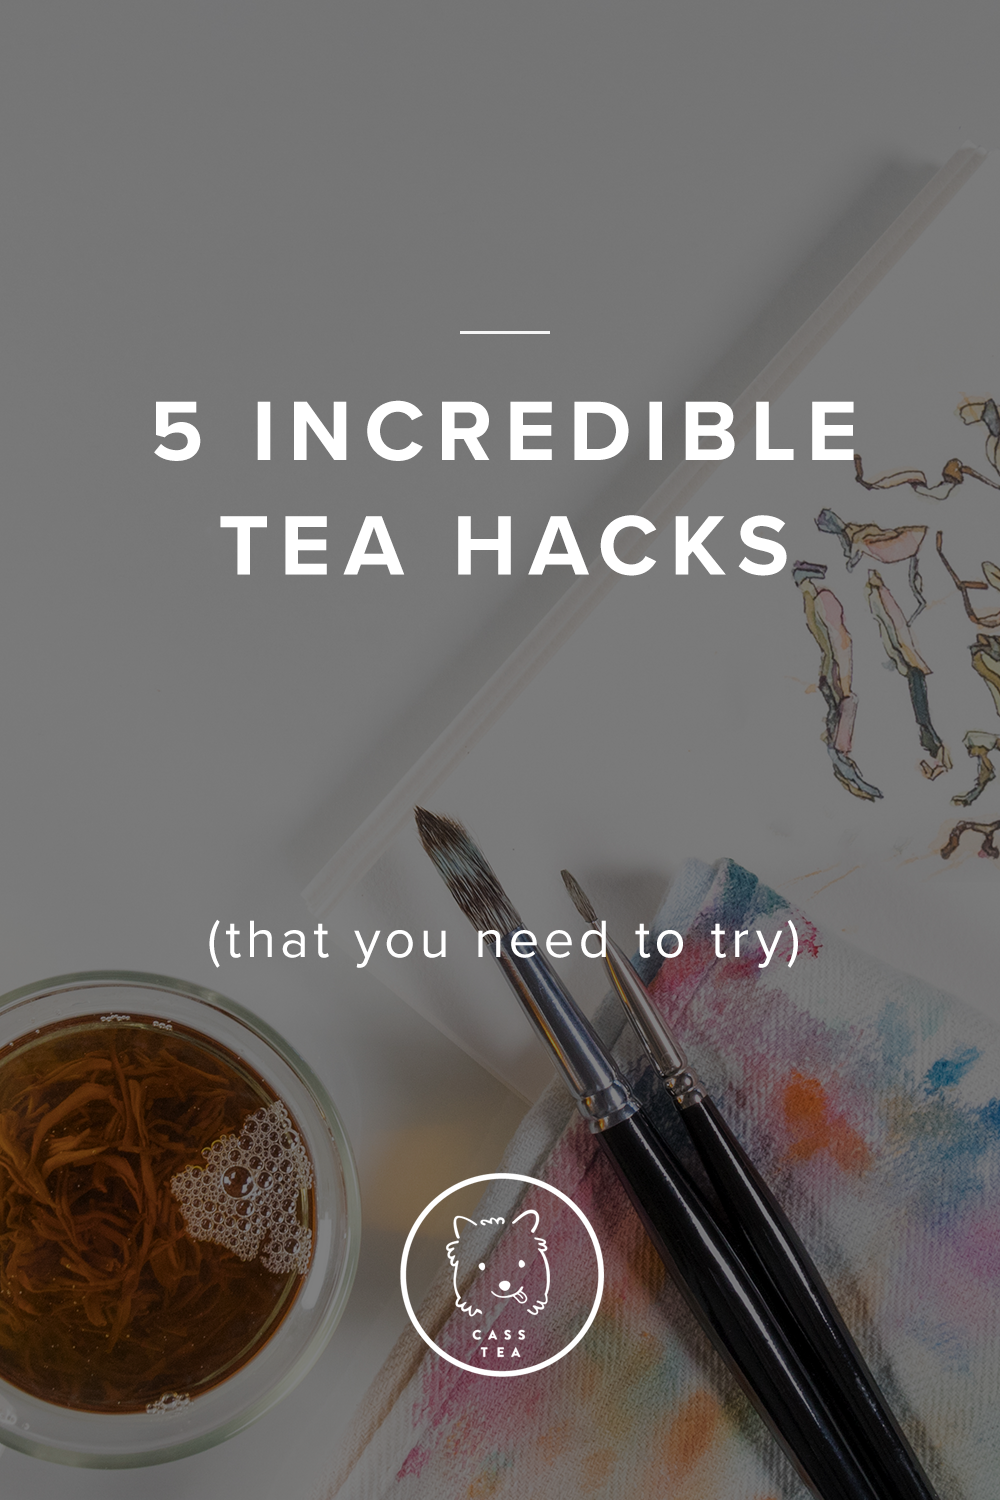 """Everything from getting squeezing out more life from your loose leaf tea, to decaffeinating tea yourself - these 5 incredible tea hacks are easy to do and will definitely come in handy. Our favorite is the """"Kill Brew"""" trick, so be sure to read until the end to see (and taste it) for yourself."""